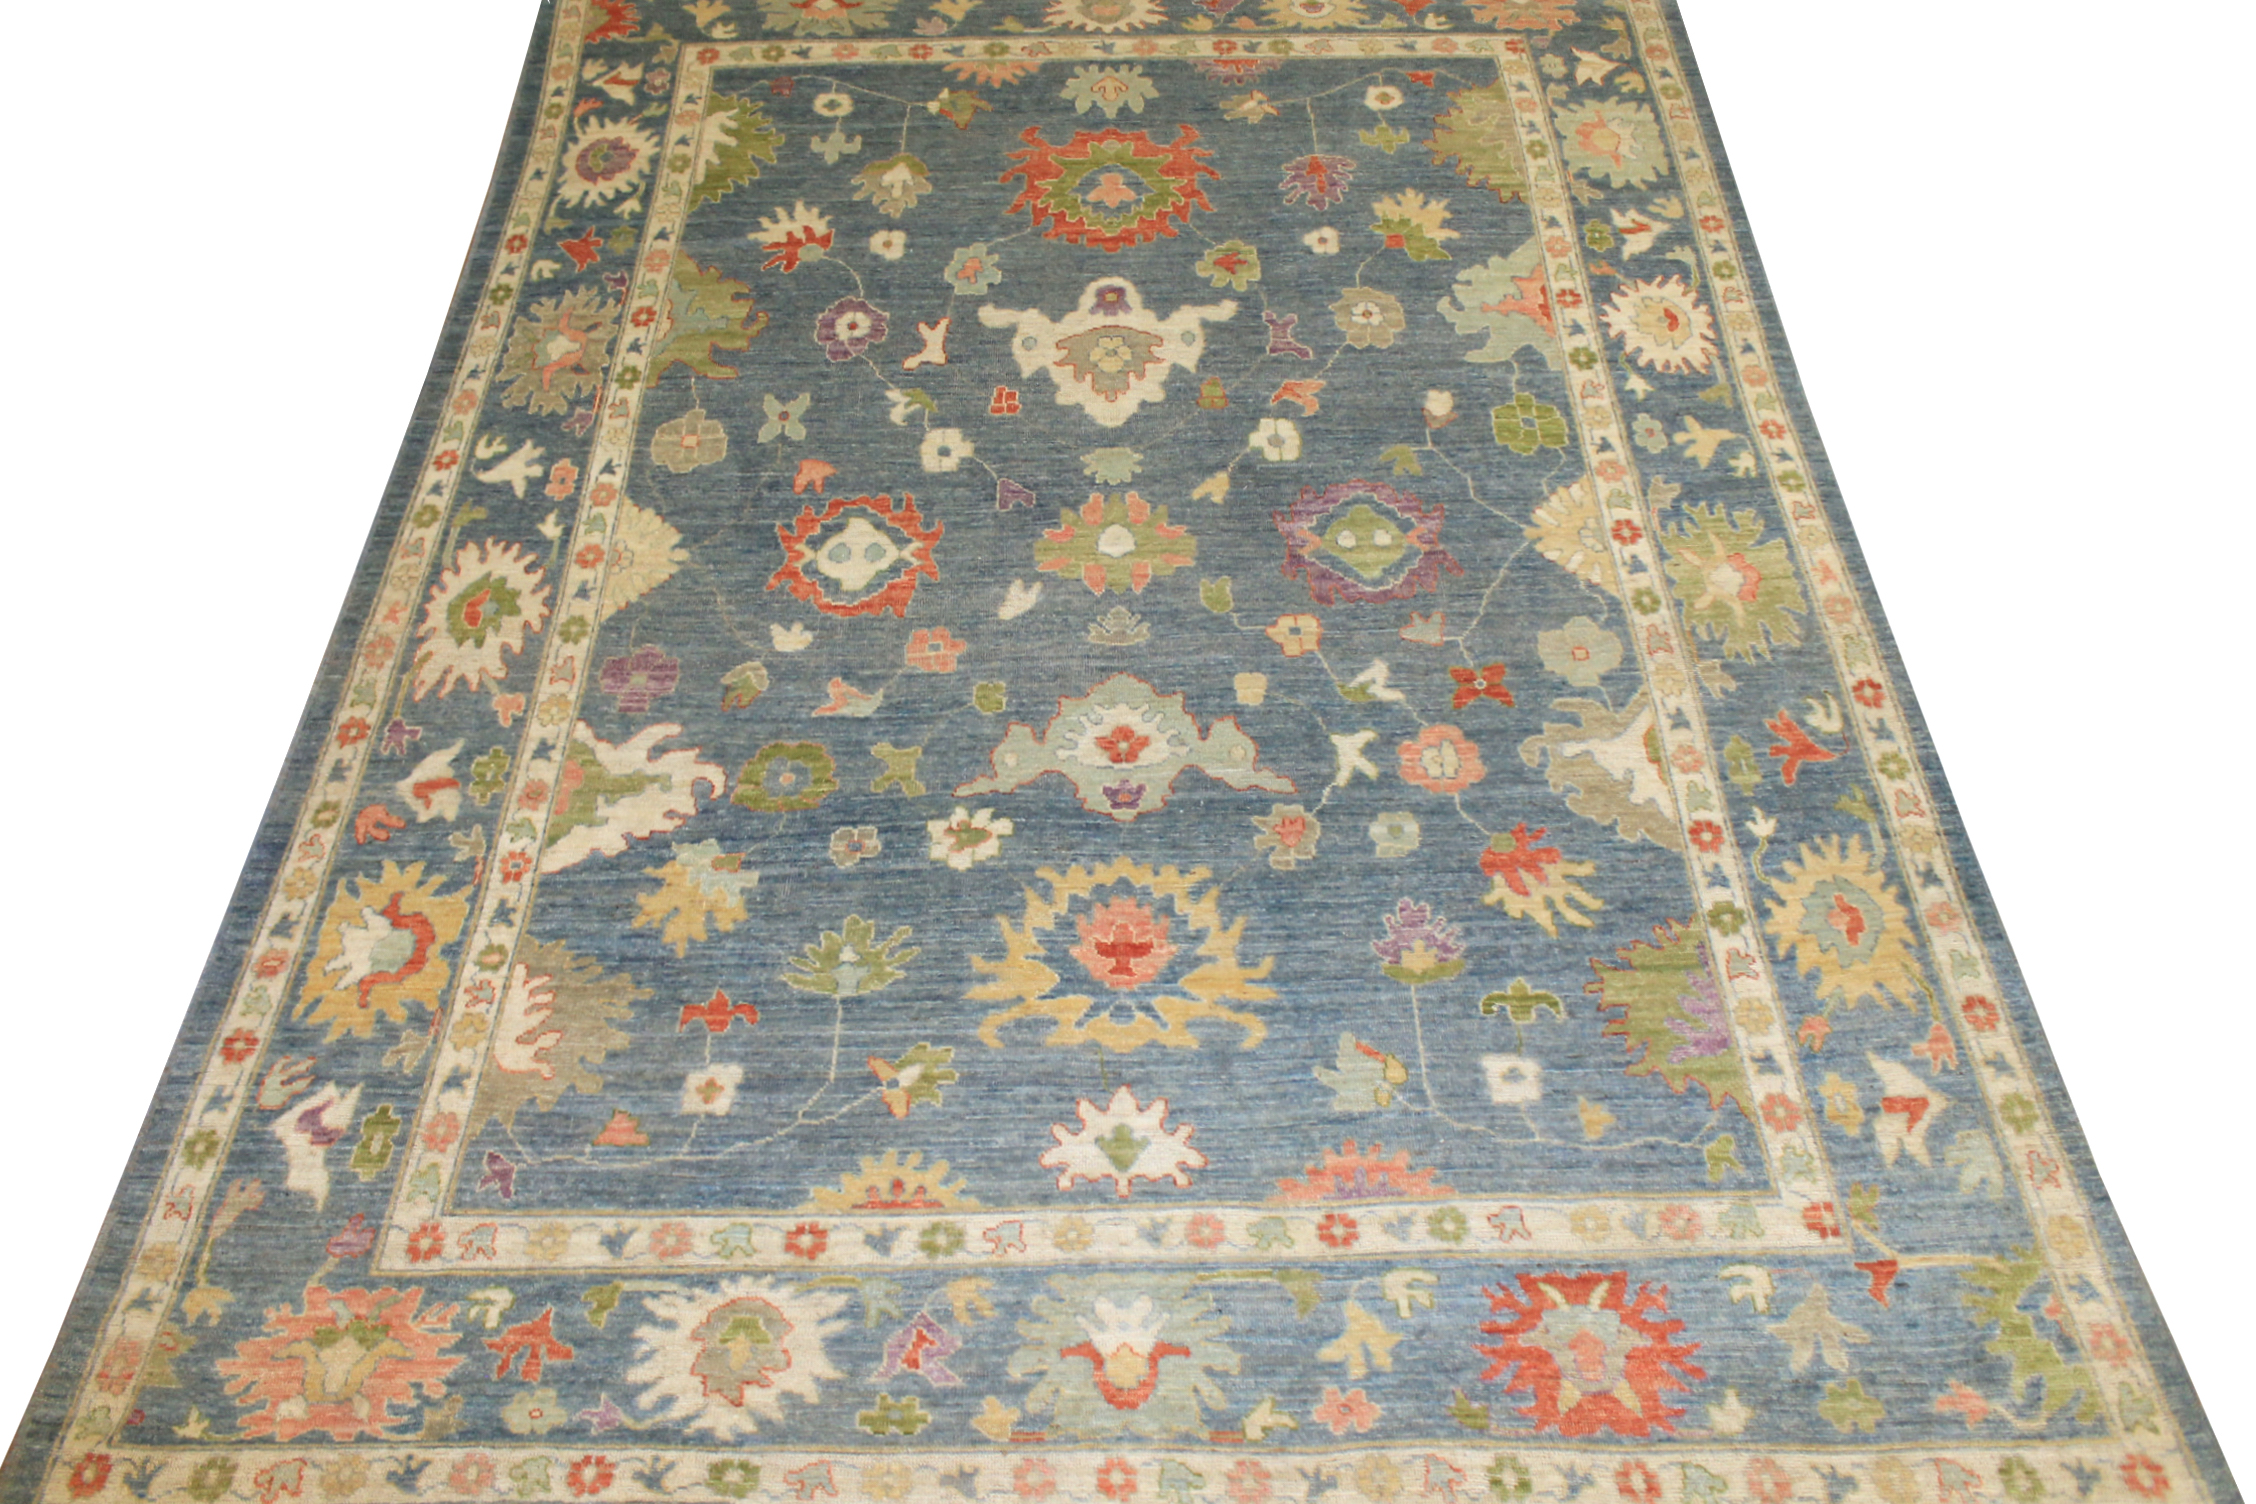 10x14 Oushak Hand Knotted Wool Area Rug - MR024377